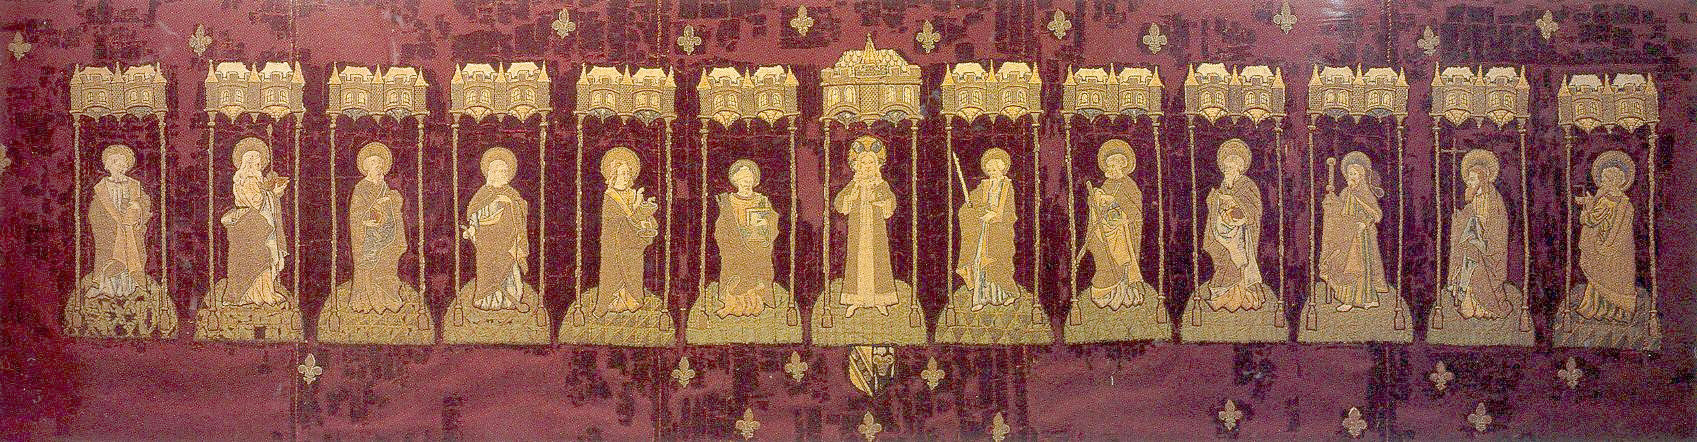 A 15th-century altar cloth that survives in almost miraculous condition, one of the National Trust's greatest treaures